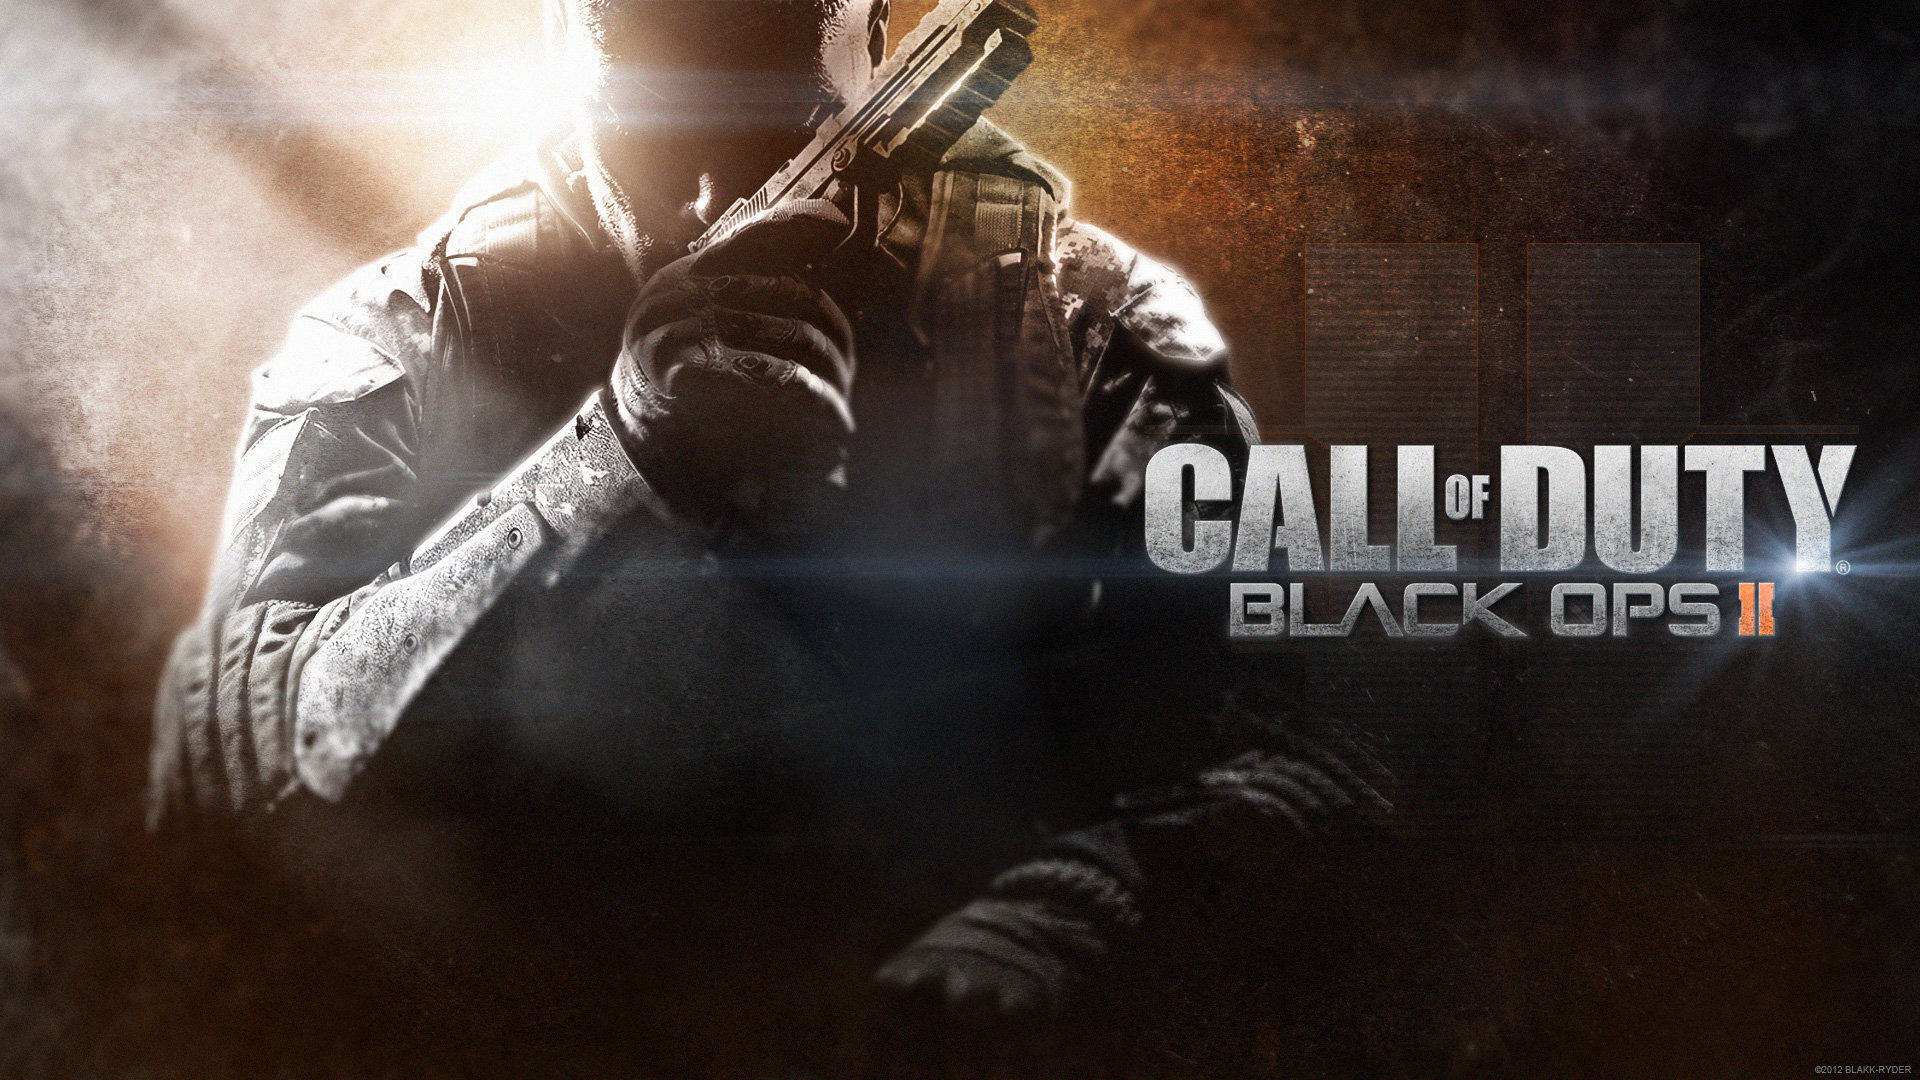 Call Of Duty Black Ops 2 Wallpapers 1920x1080 Full Hd 1080p